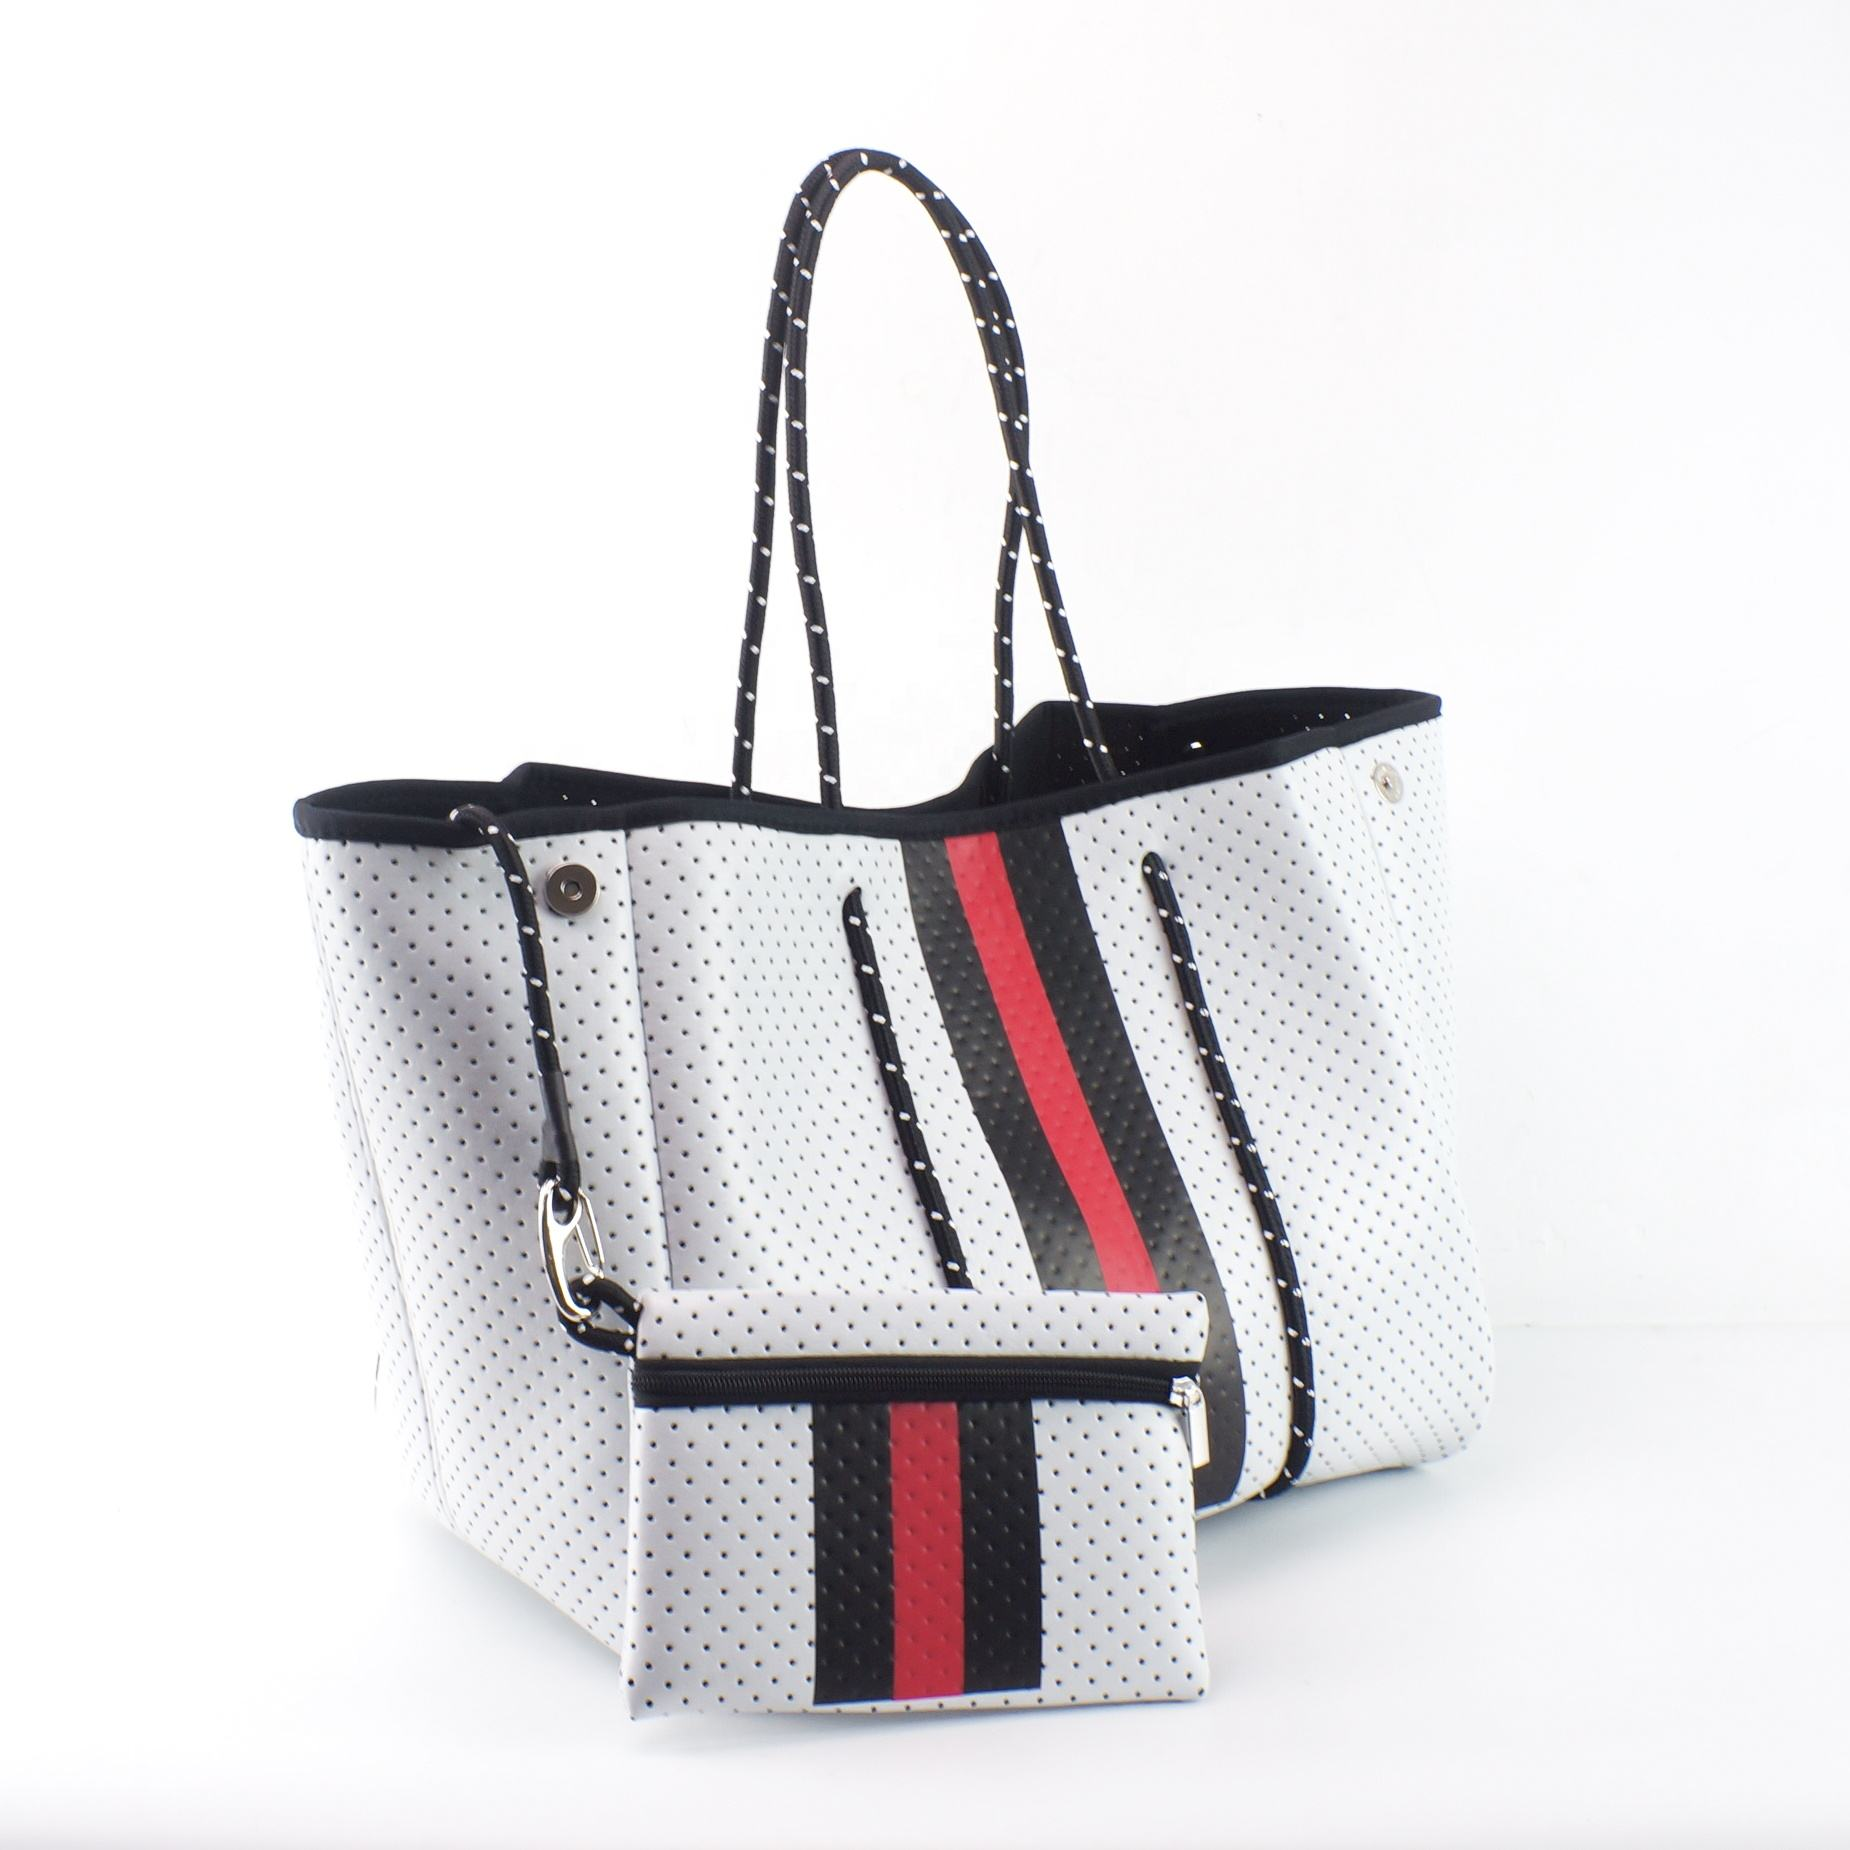 2020 Best Selling Perforated Neoprene Bag Wholesale Beach Bag summer sea bag handbags for women